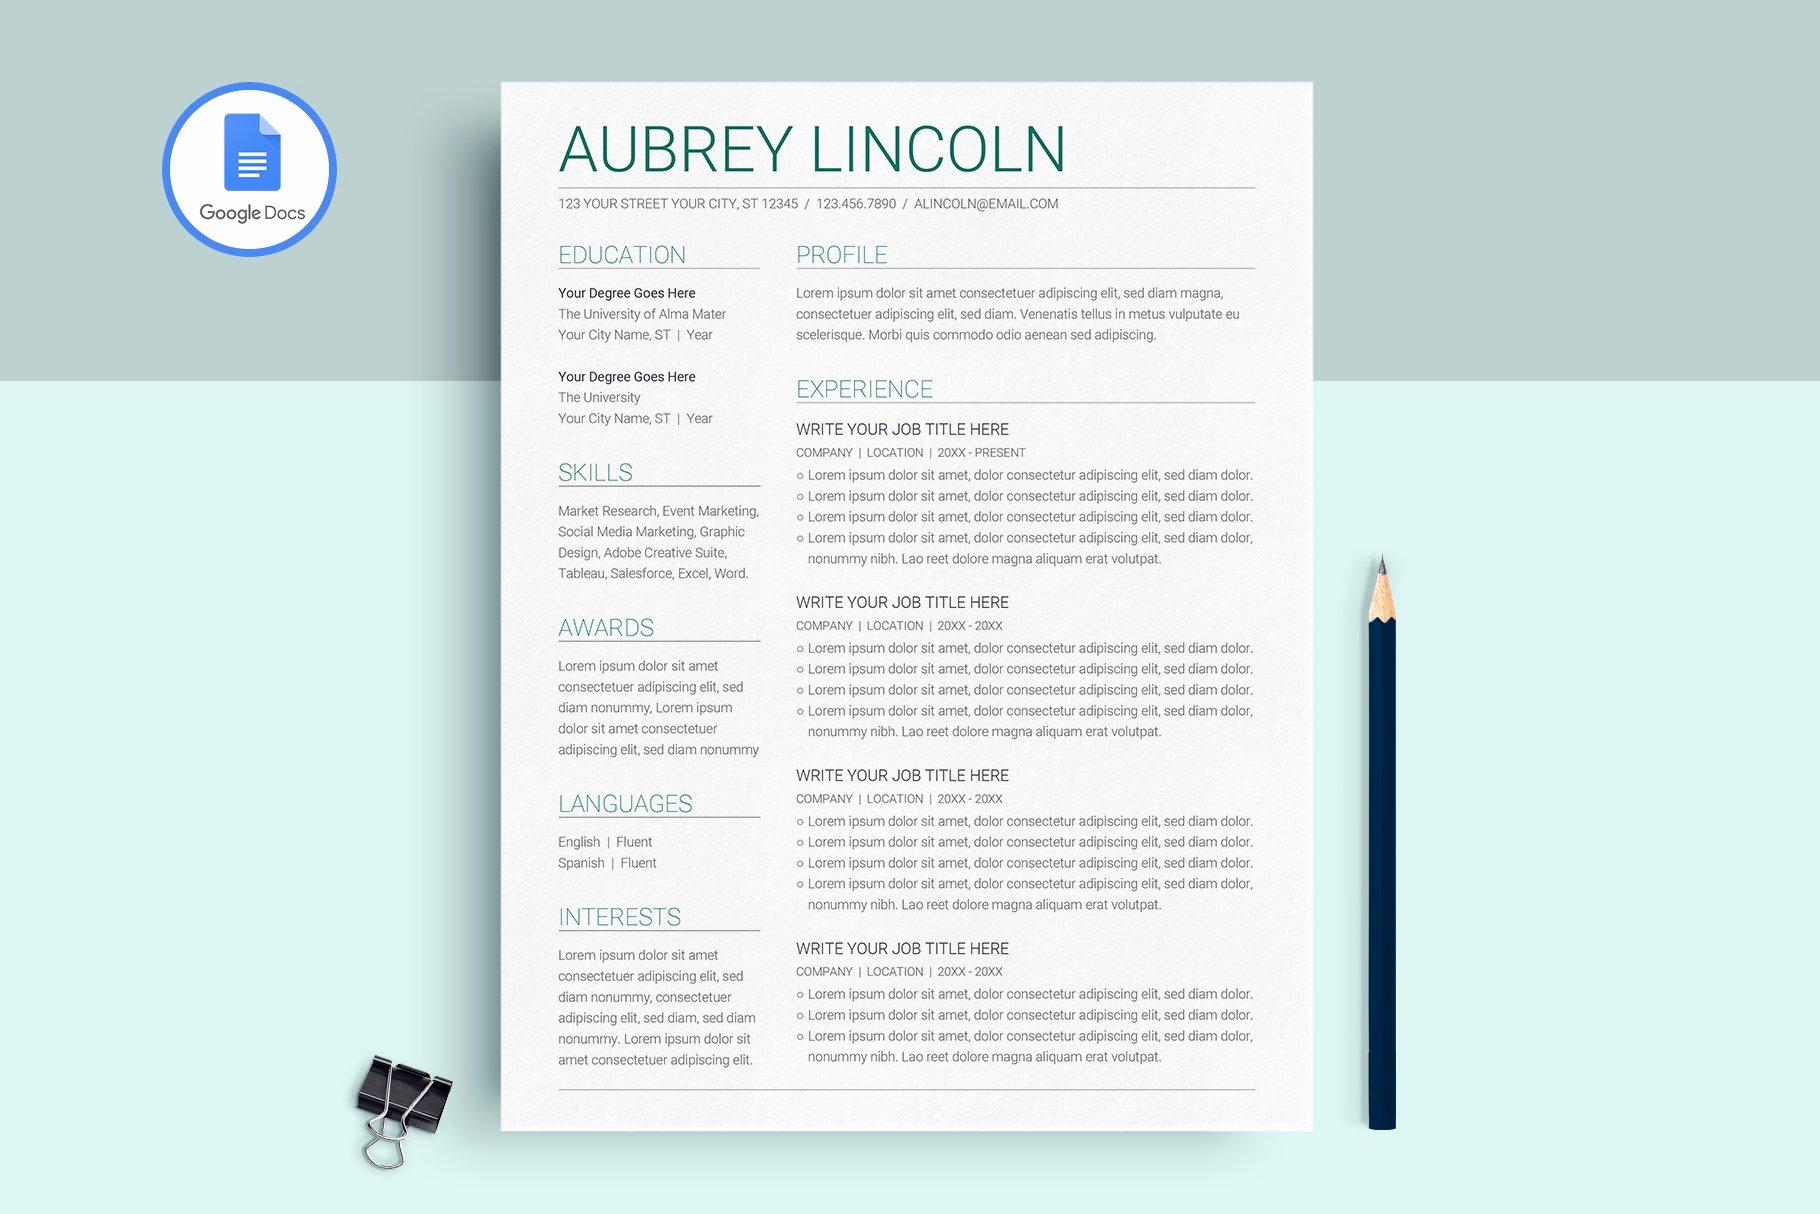 Google Docs Magazine Template Unique Google Docs Resume Template Resume Templates Creative